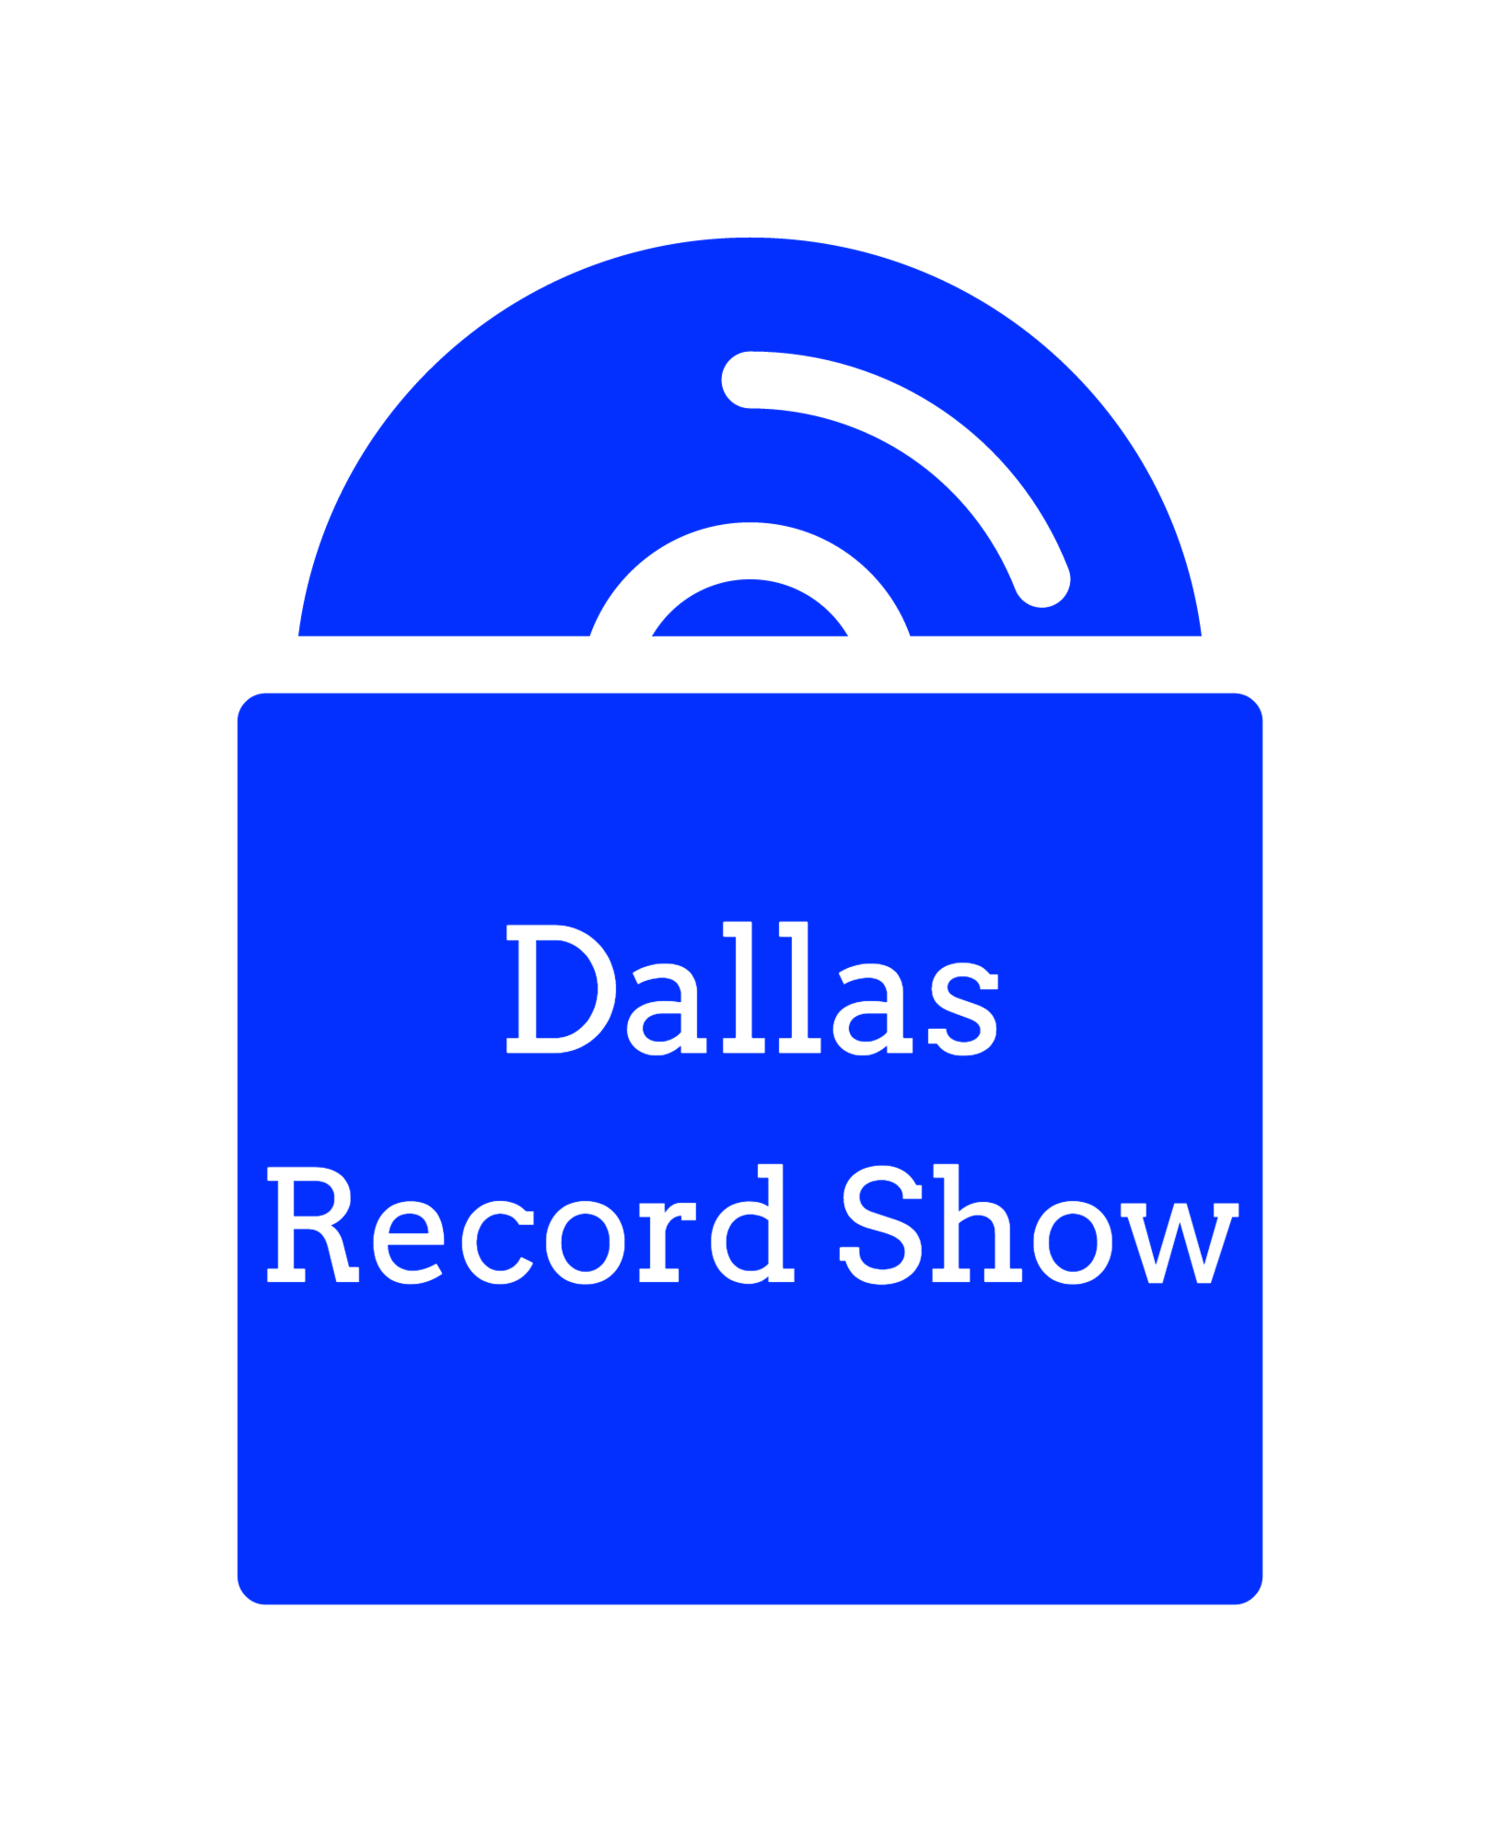 Dallas Record Show